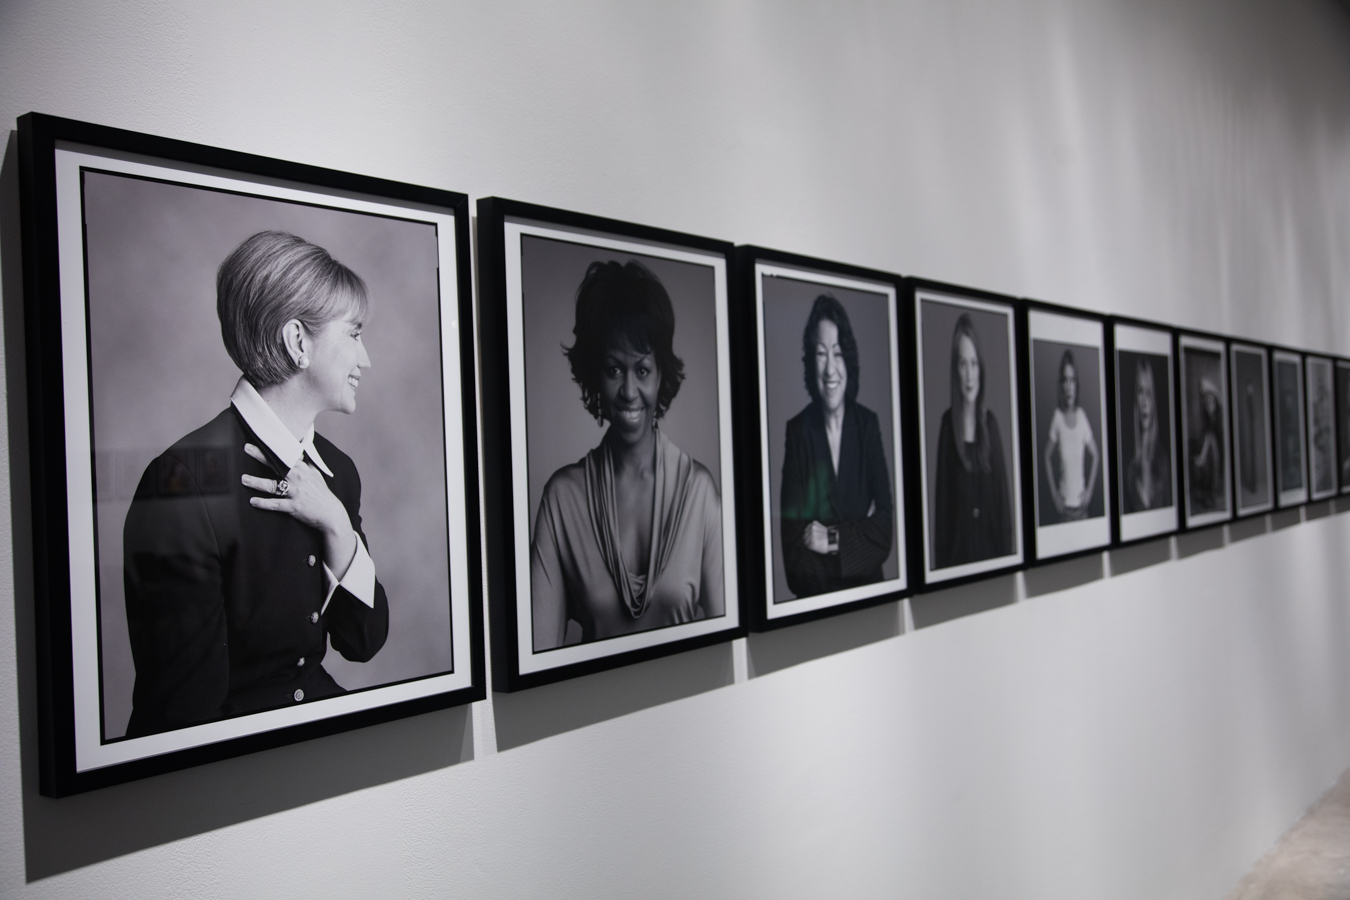 Hillary Clinton (First Lady, Senator and Presidential Nominee), Michelle Obama (First Lady), Sonia Sotamayor (Supreme Court Justice) and black and white image installation